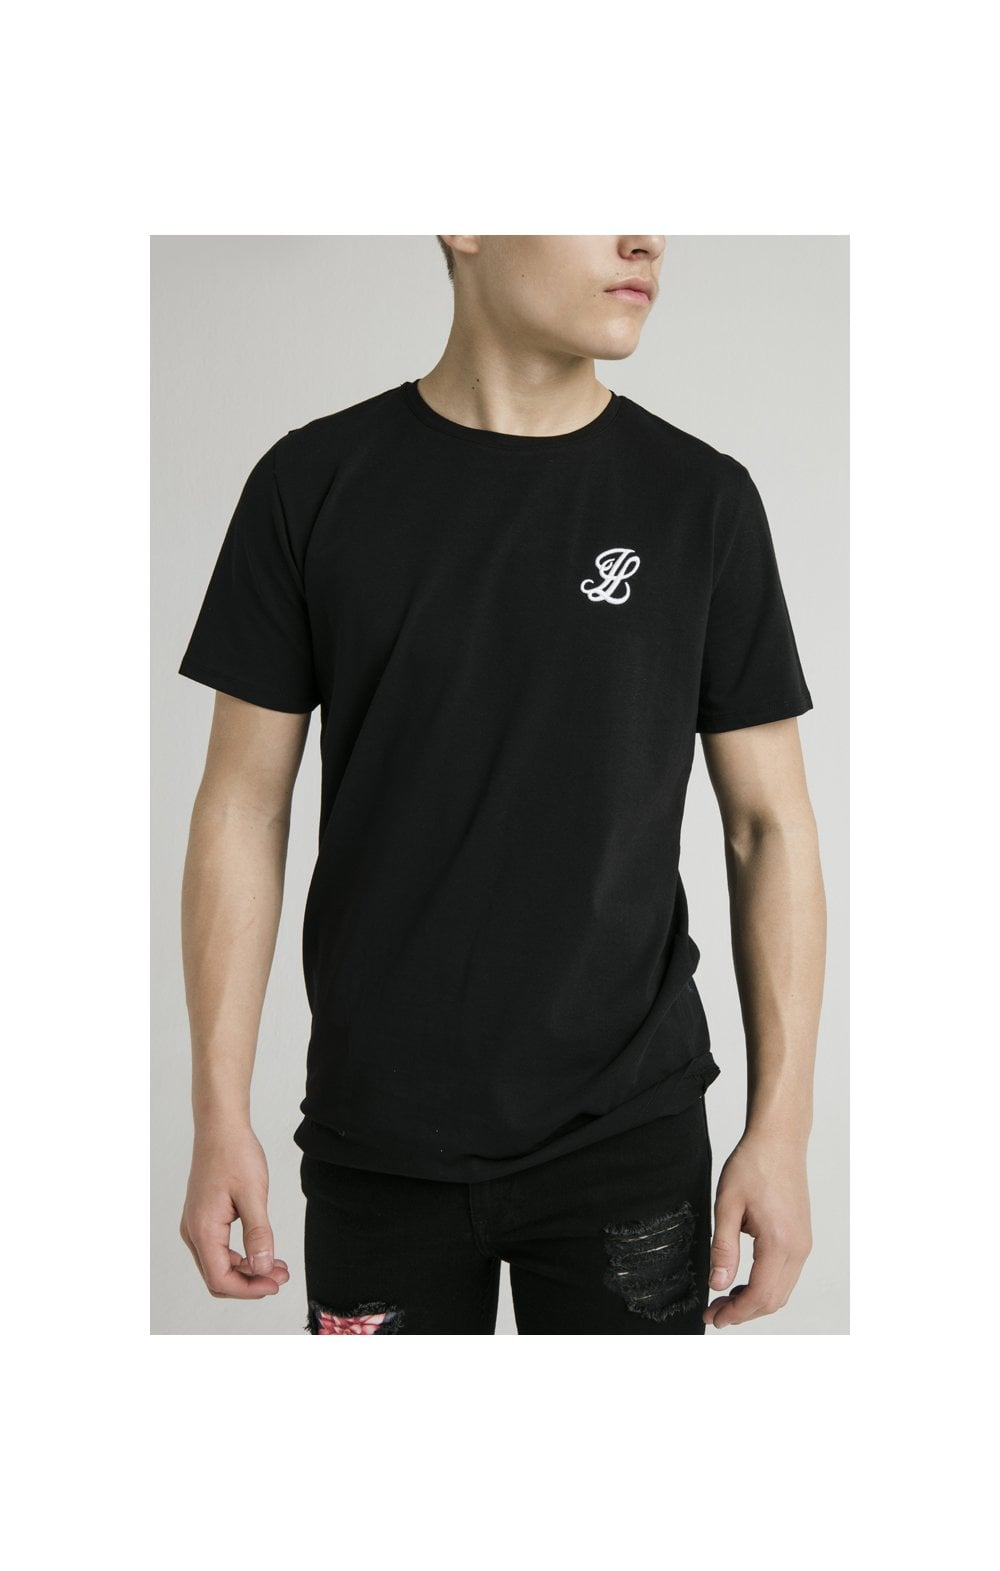 Illusive London S/S Core Tee - Black